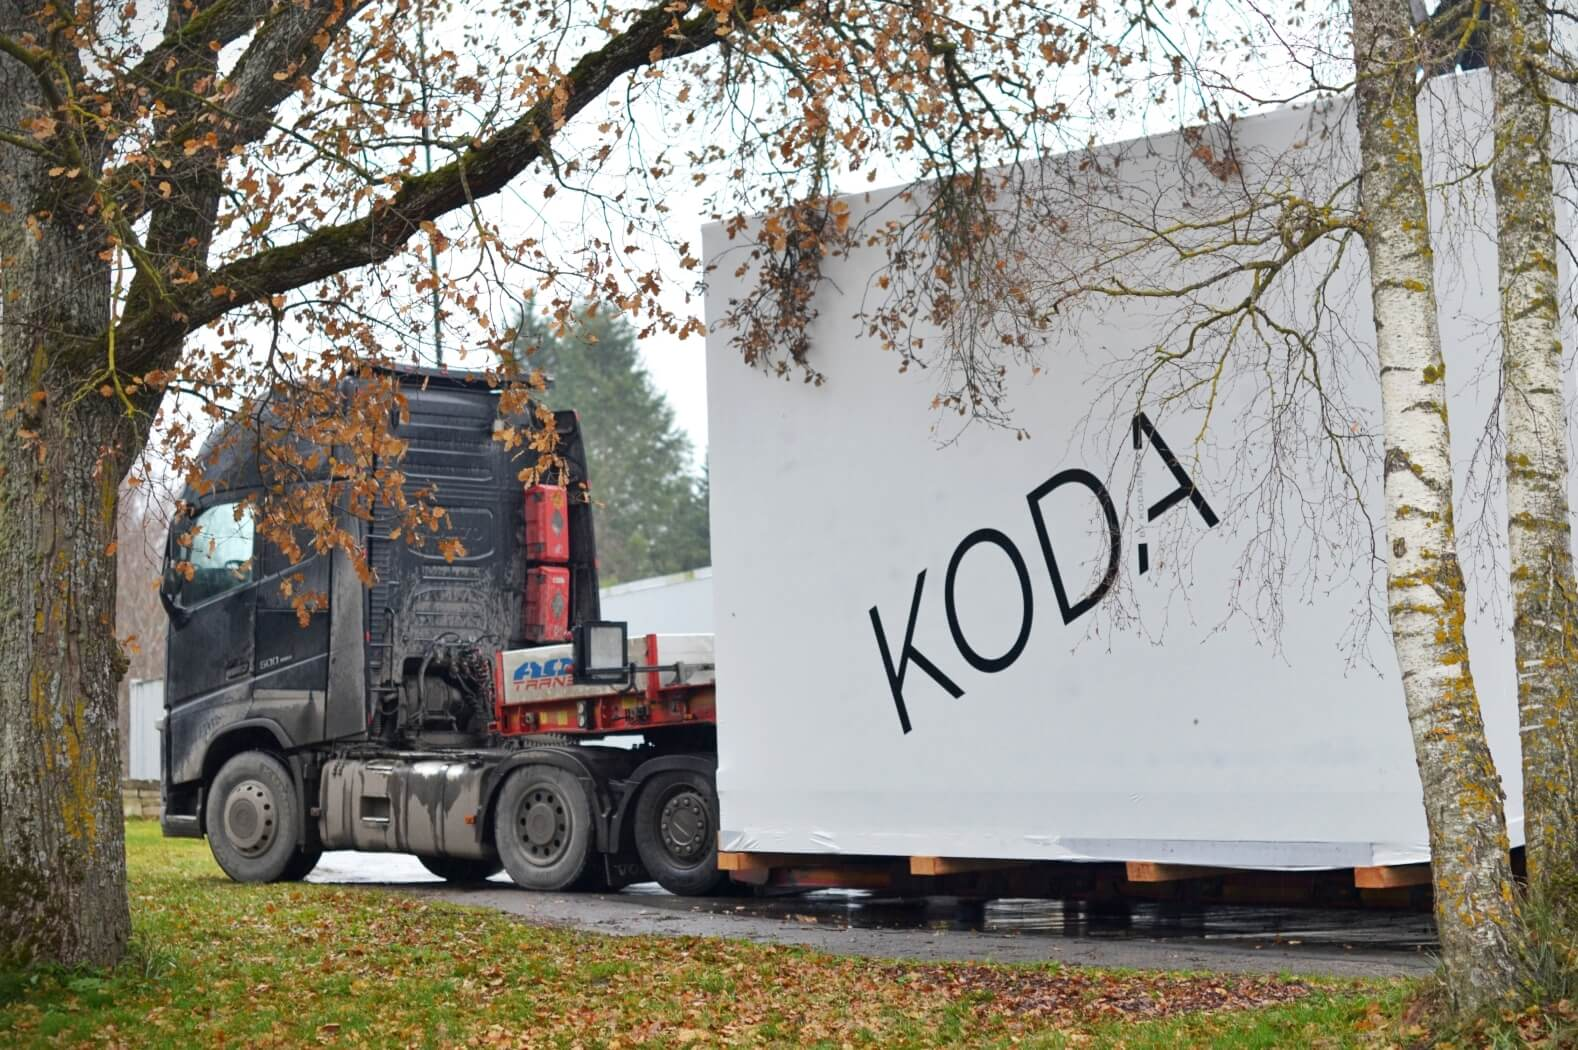 KODA on a trailer